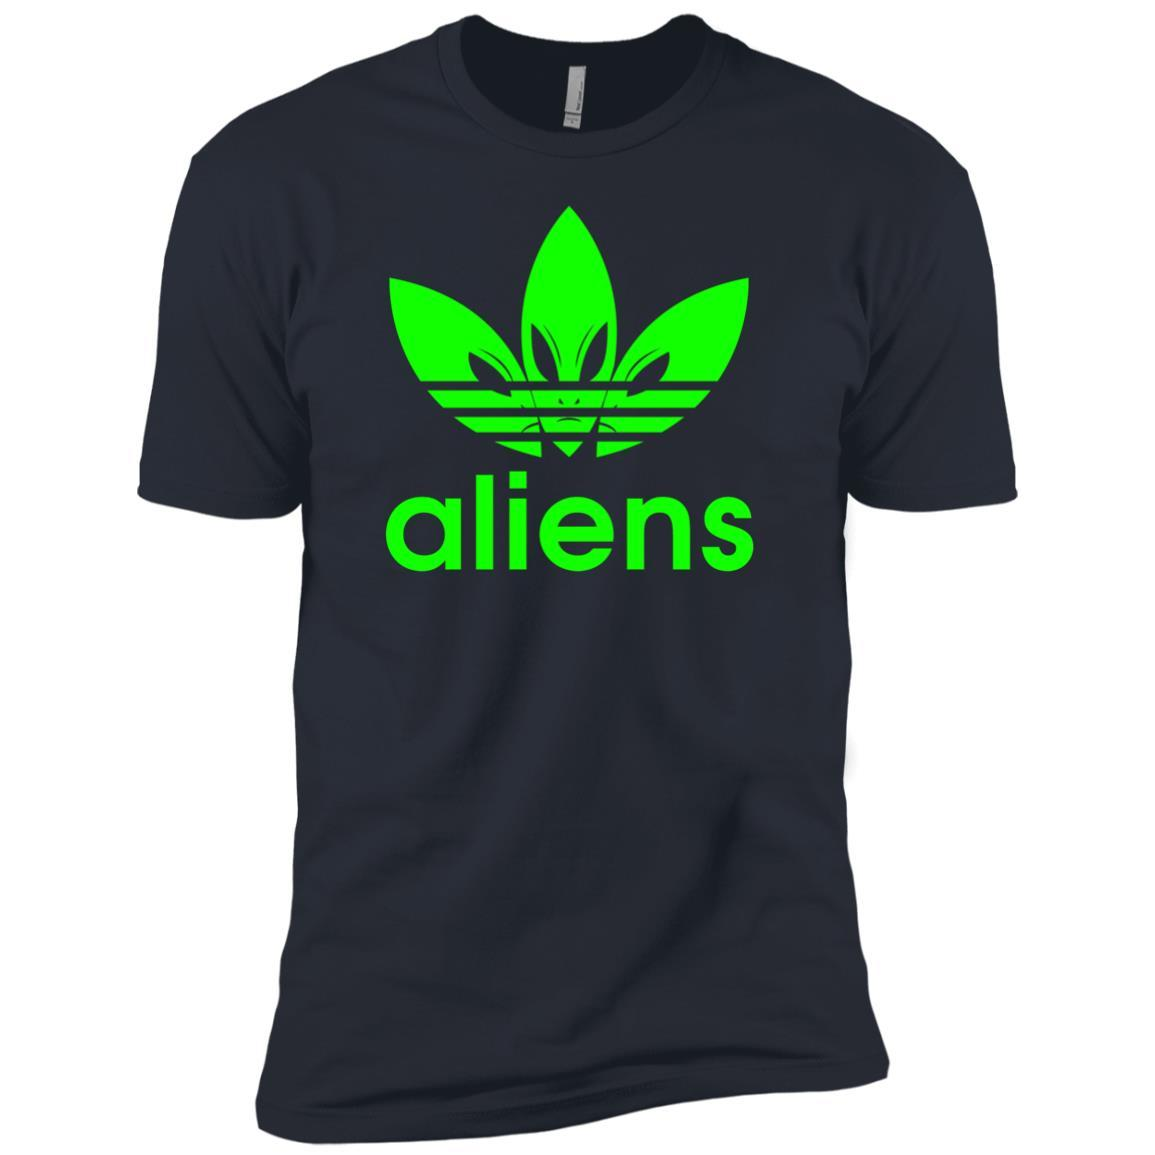 T-Shirts - Green Aliens (not Adidas) Premium Tee